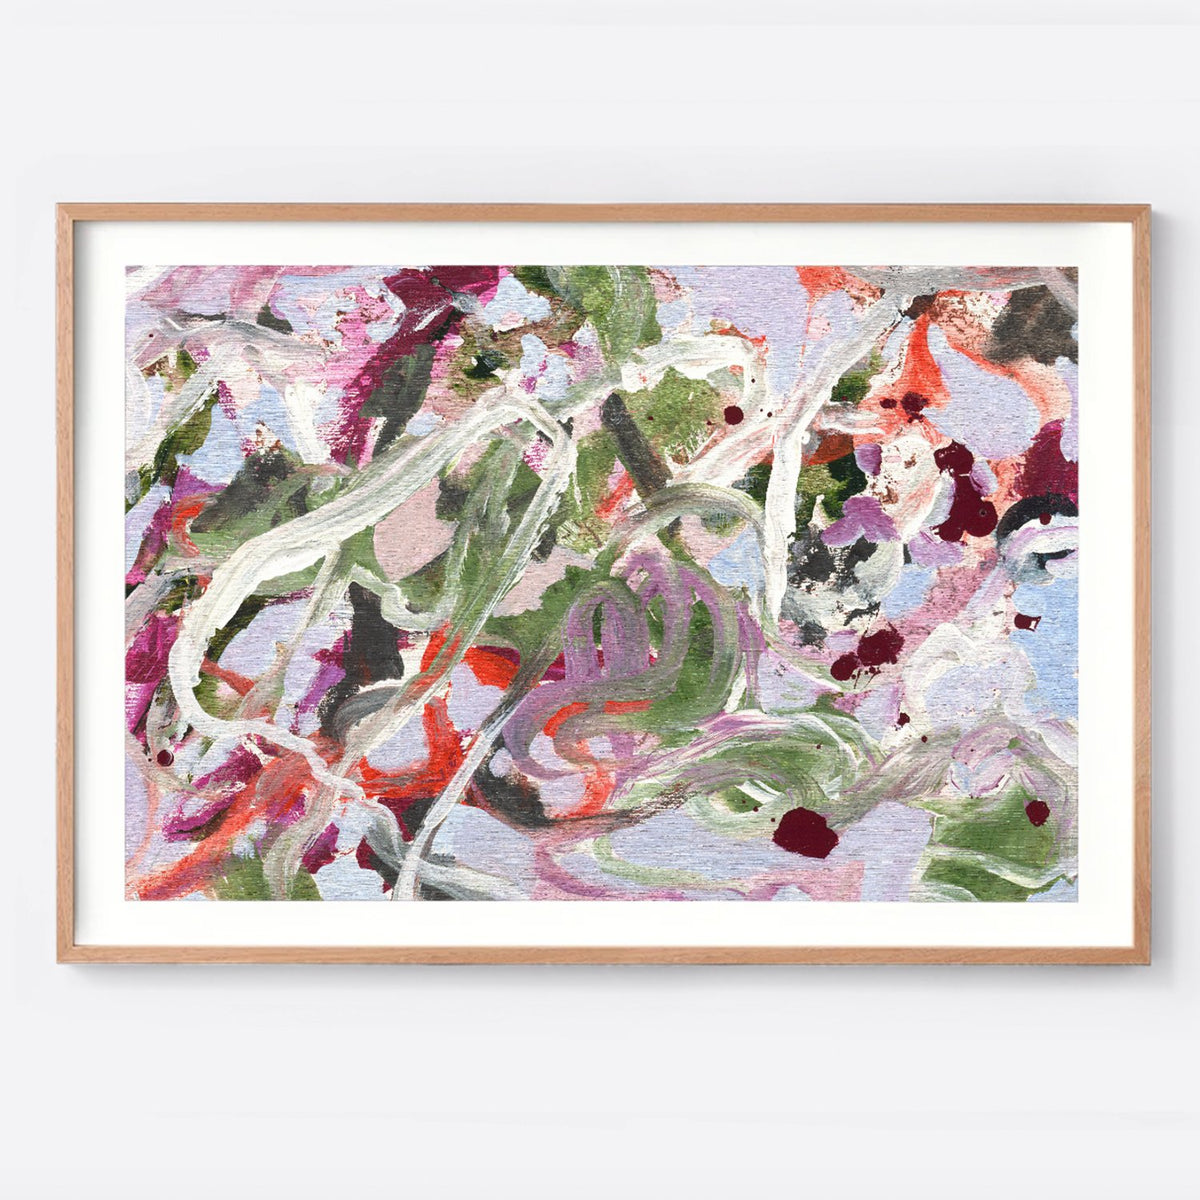 Gentle Sway - by Gabrielle Jones for ArtPrintz